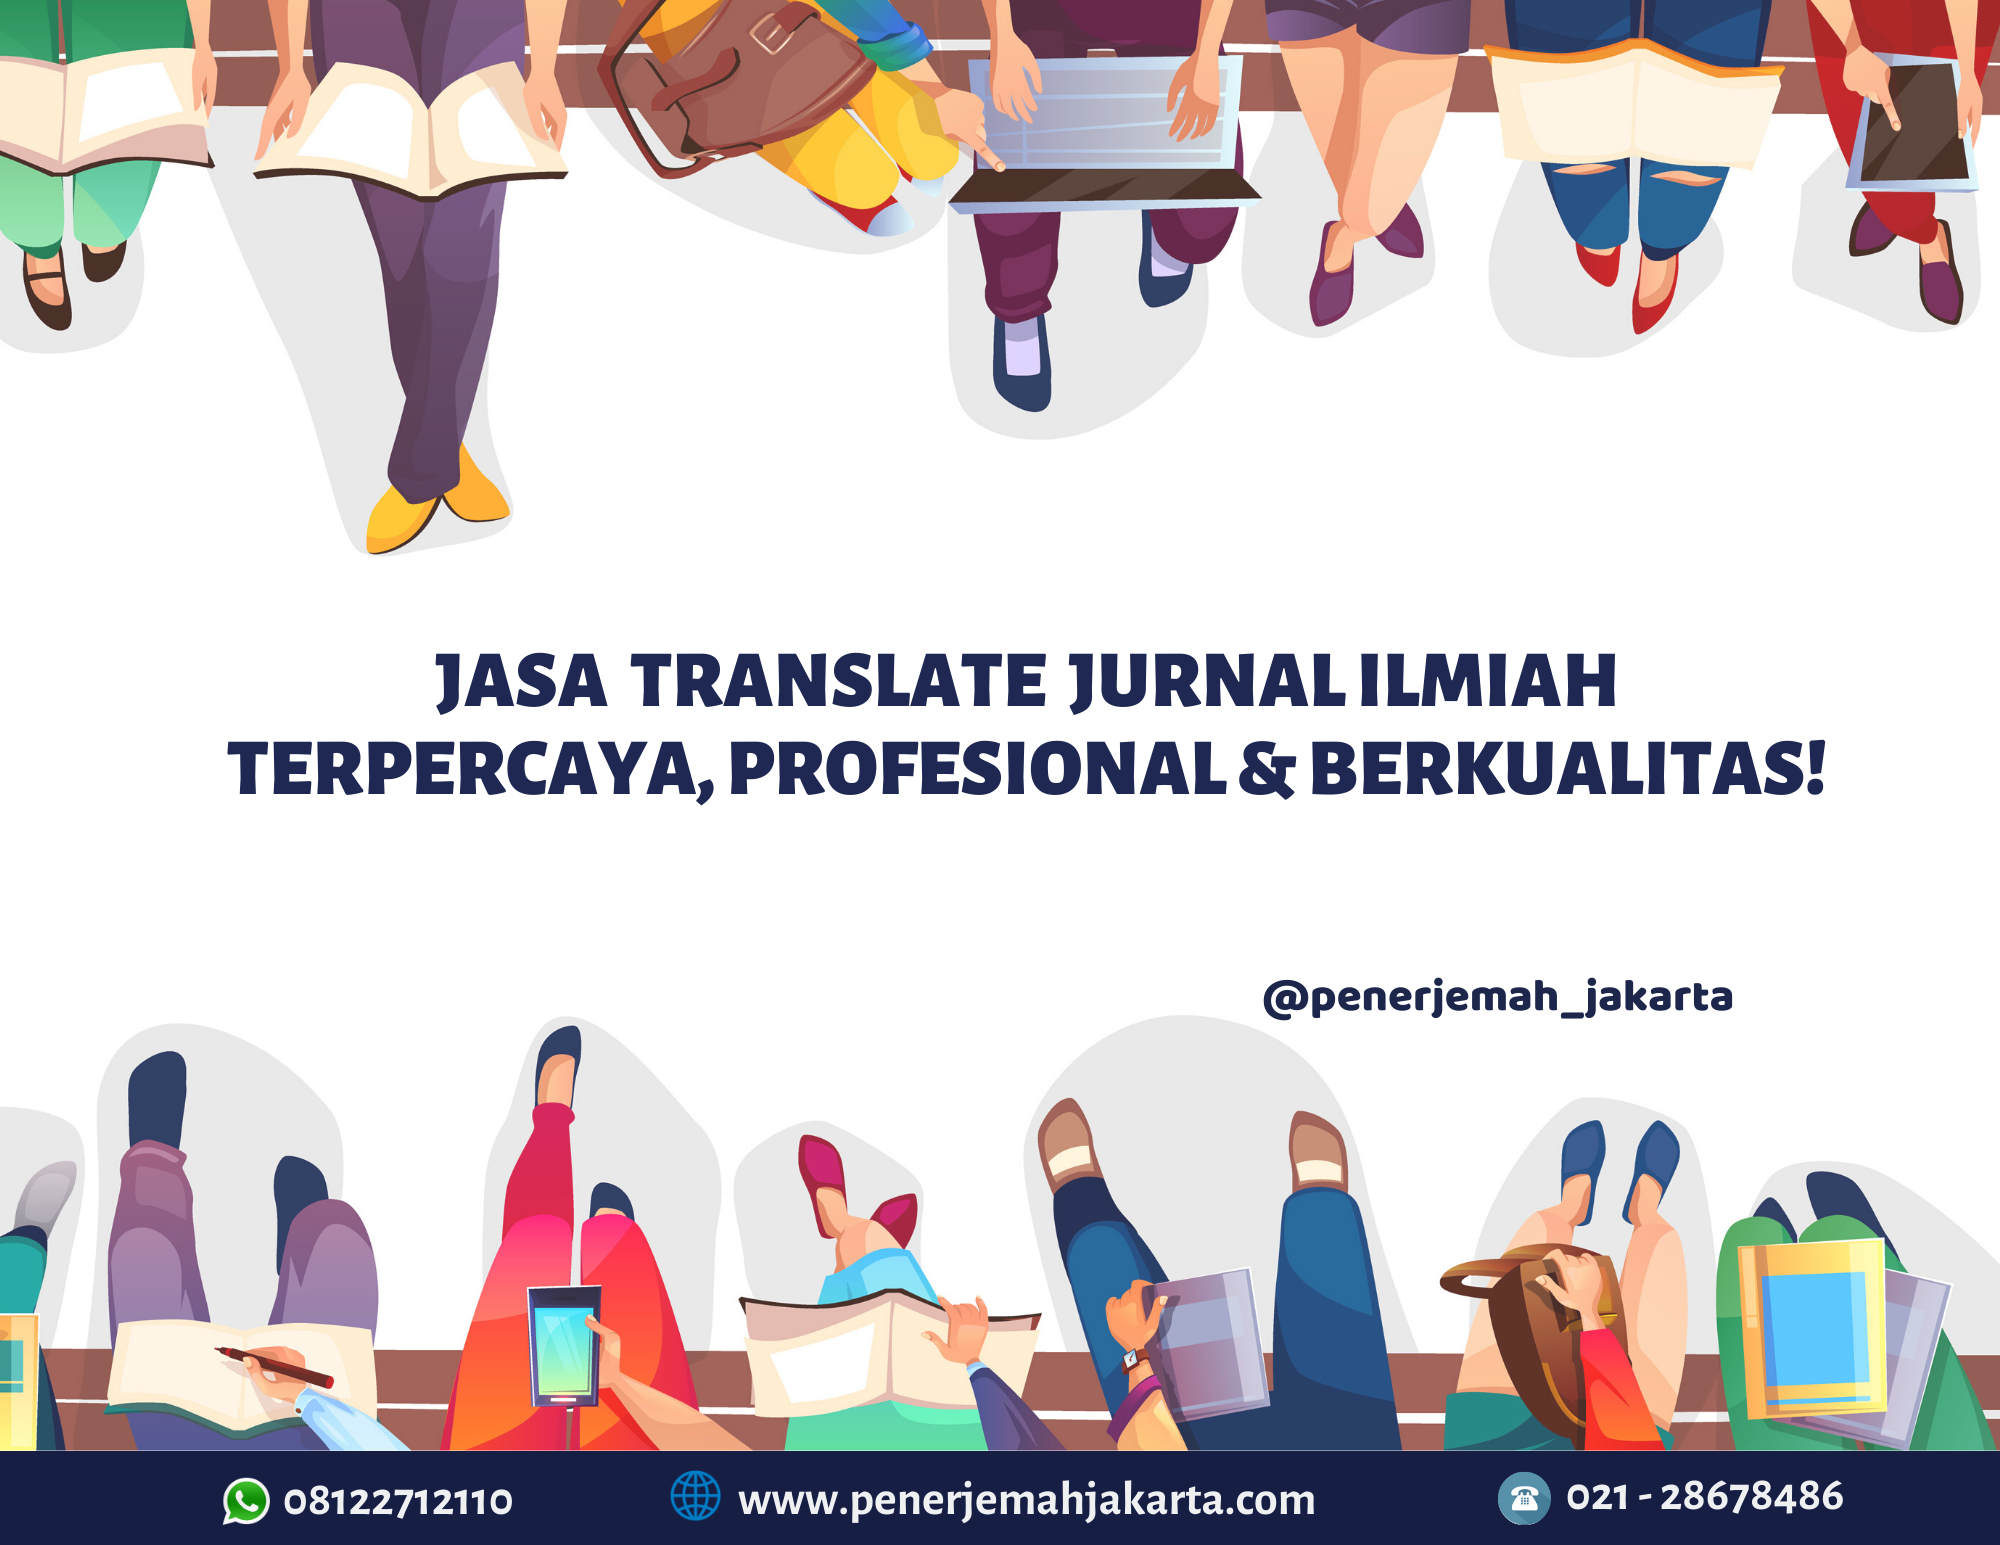 Jasa Translate Jurnal Ilmiah